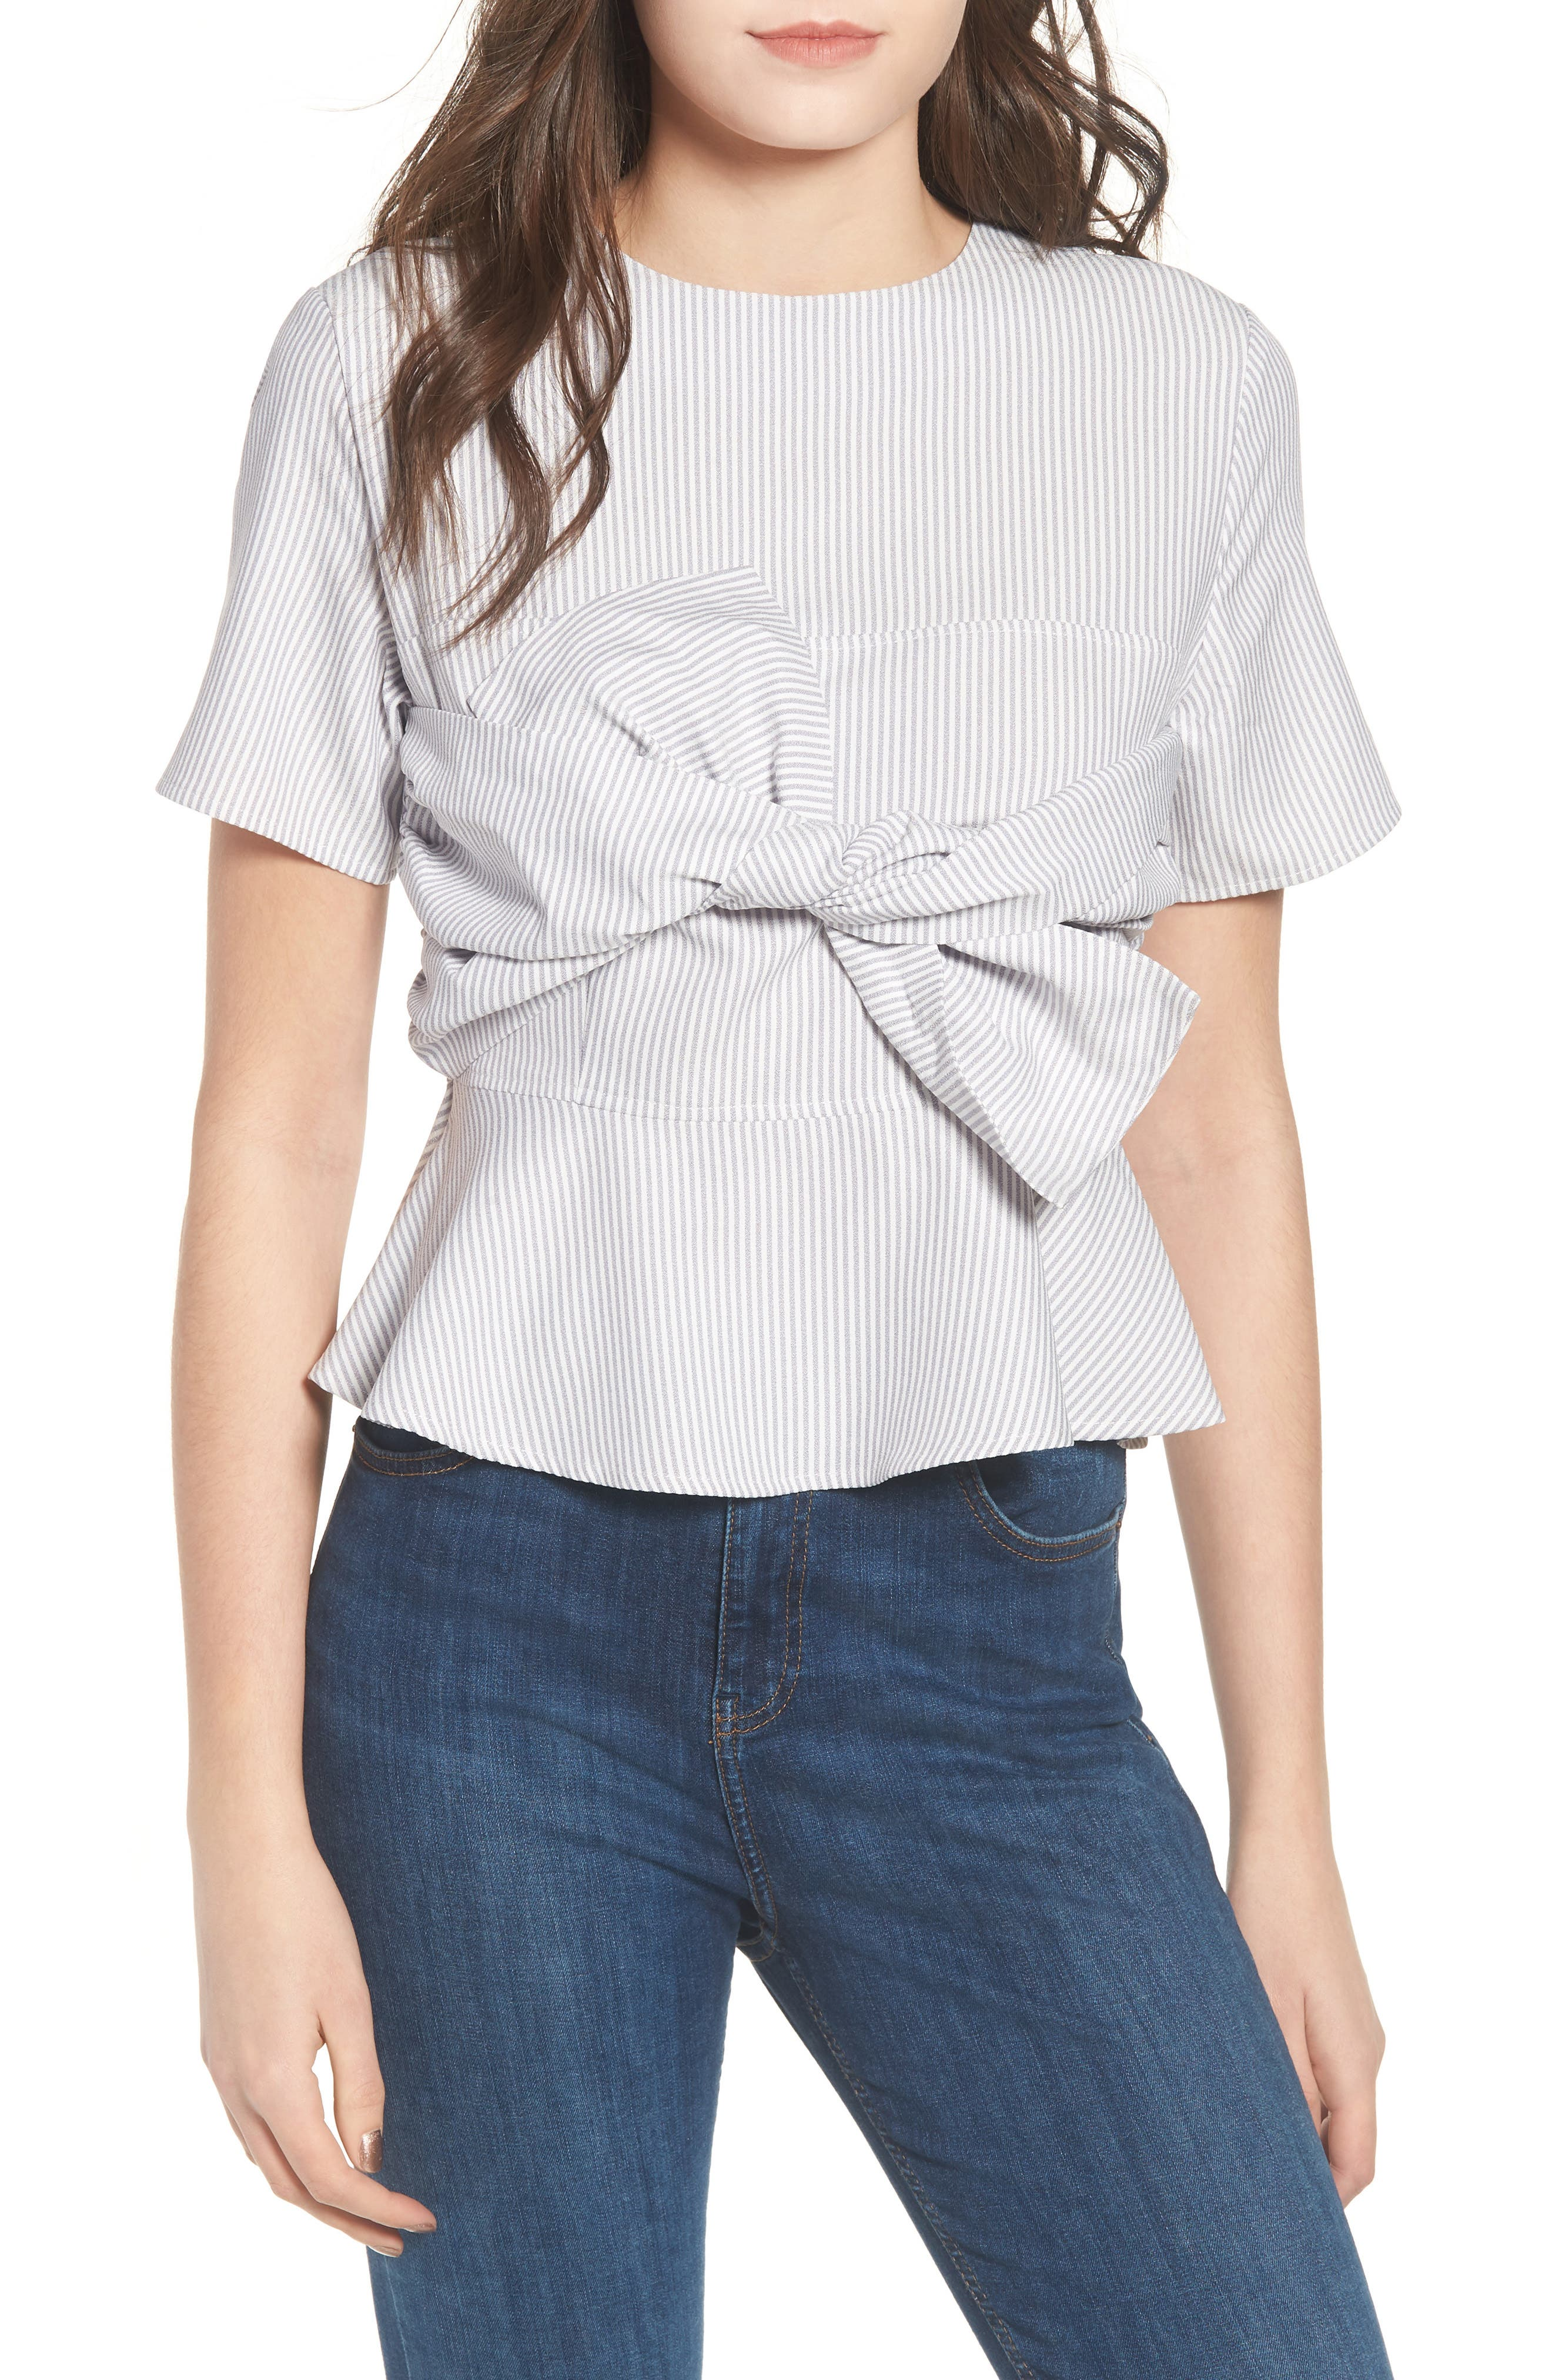 LOST INK Tie Front Striped Blouse